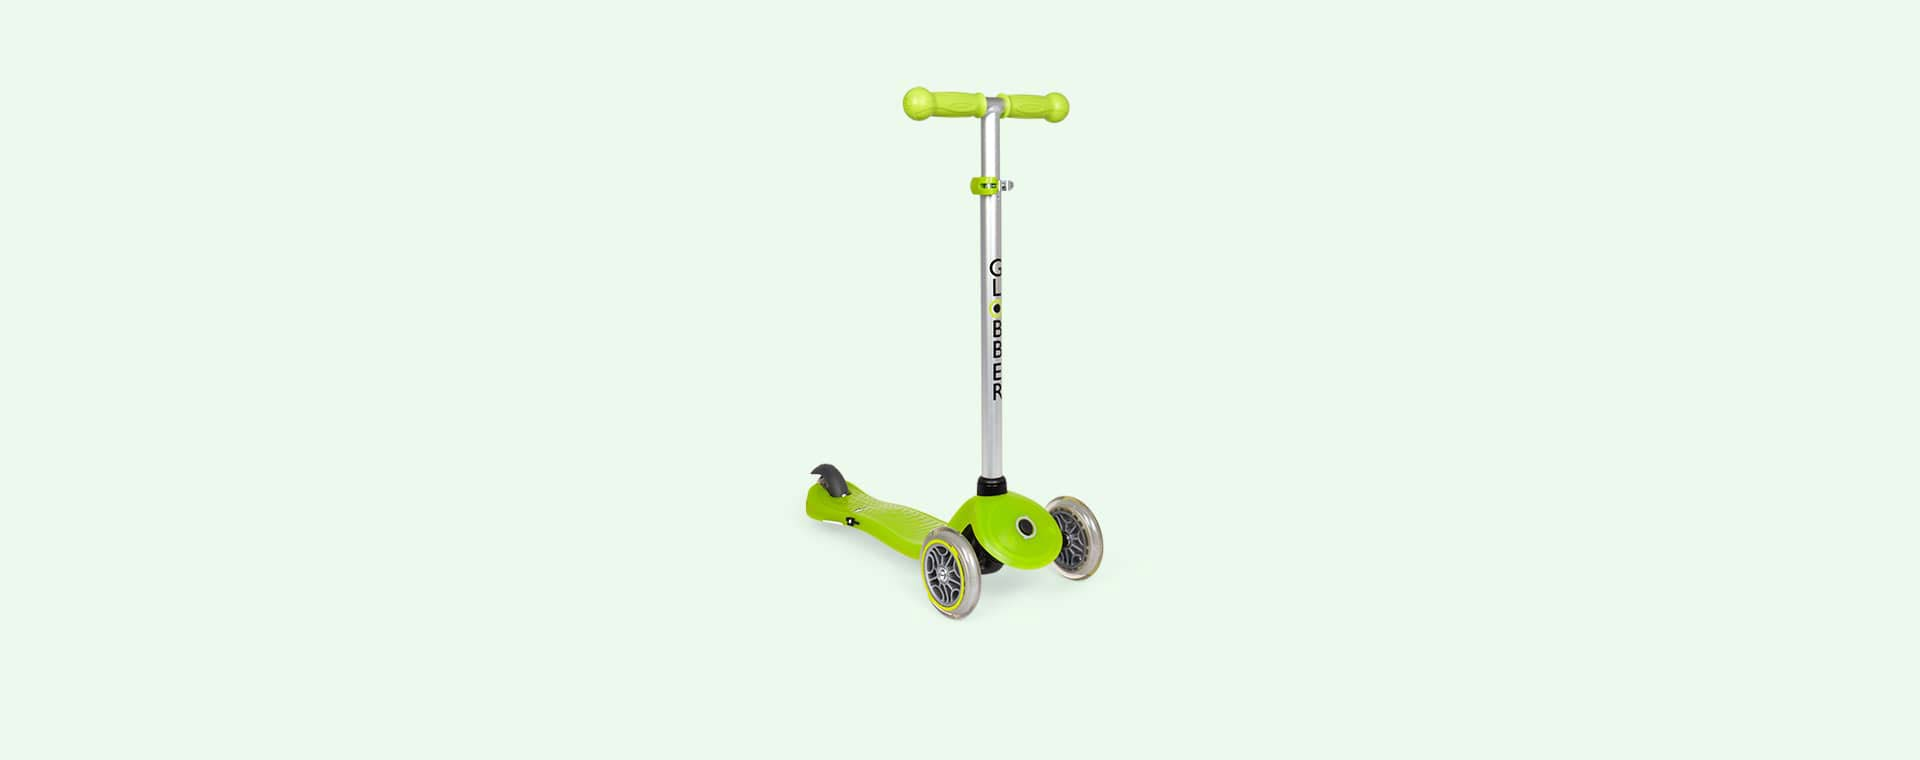 Lime Green Globber Globber Primo Starlight Scooter